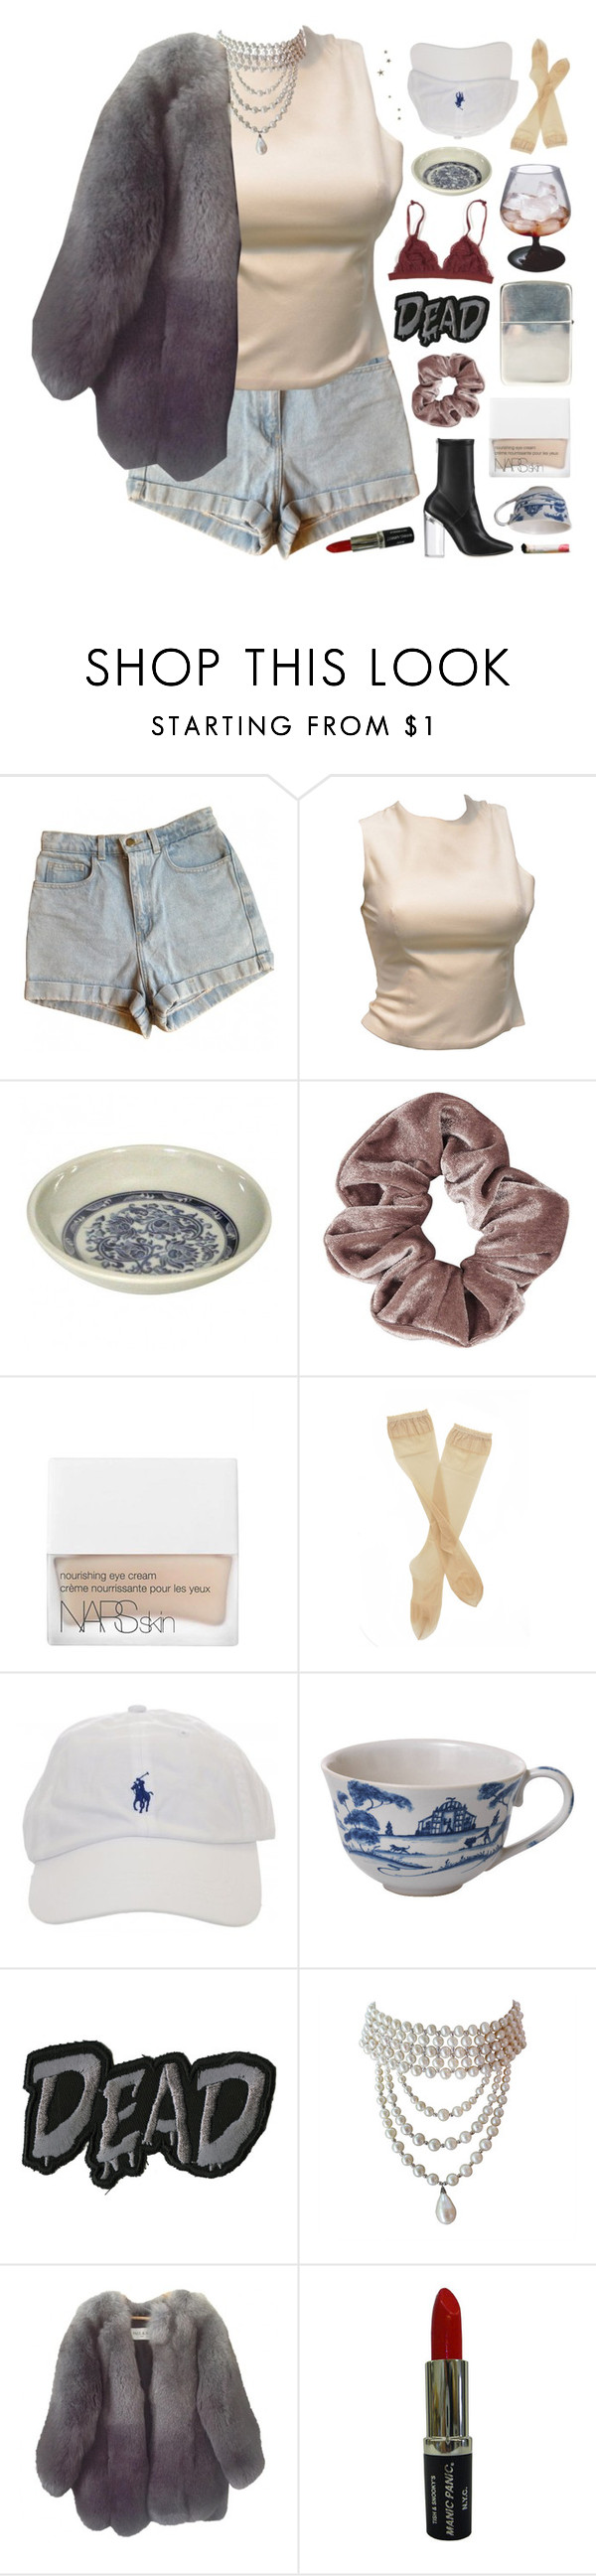 """""""my anxiety is masked by my chill and natural awkwardness."""" by annamari-a ❤ liked on Polyvore featuring American Apparel, Versace, Ugo Cacciatori, Christian Dior, Topshop, NARS Cosmetics, Fogal, Juliska, Paul & Joe and Manic Panic NYC"""